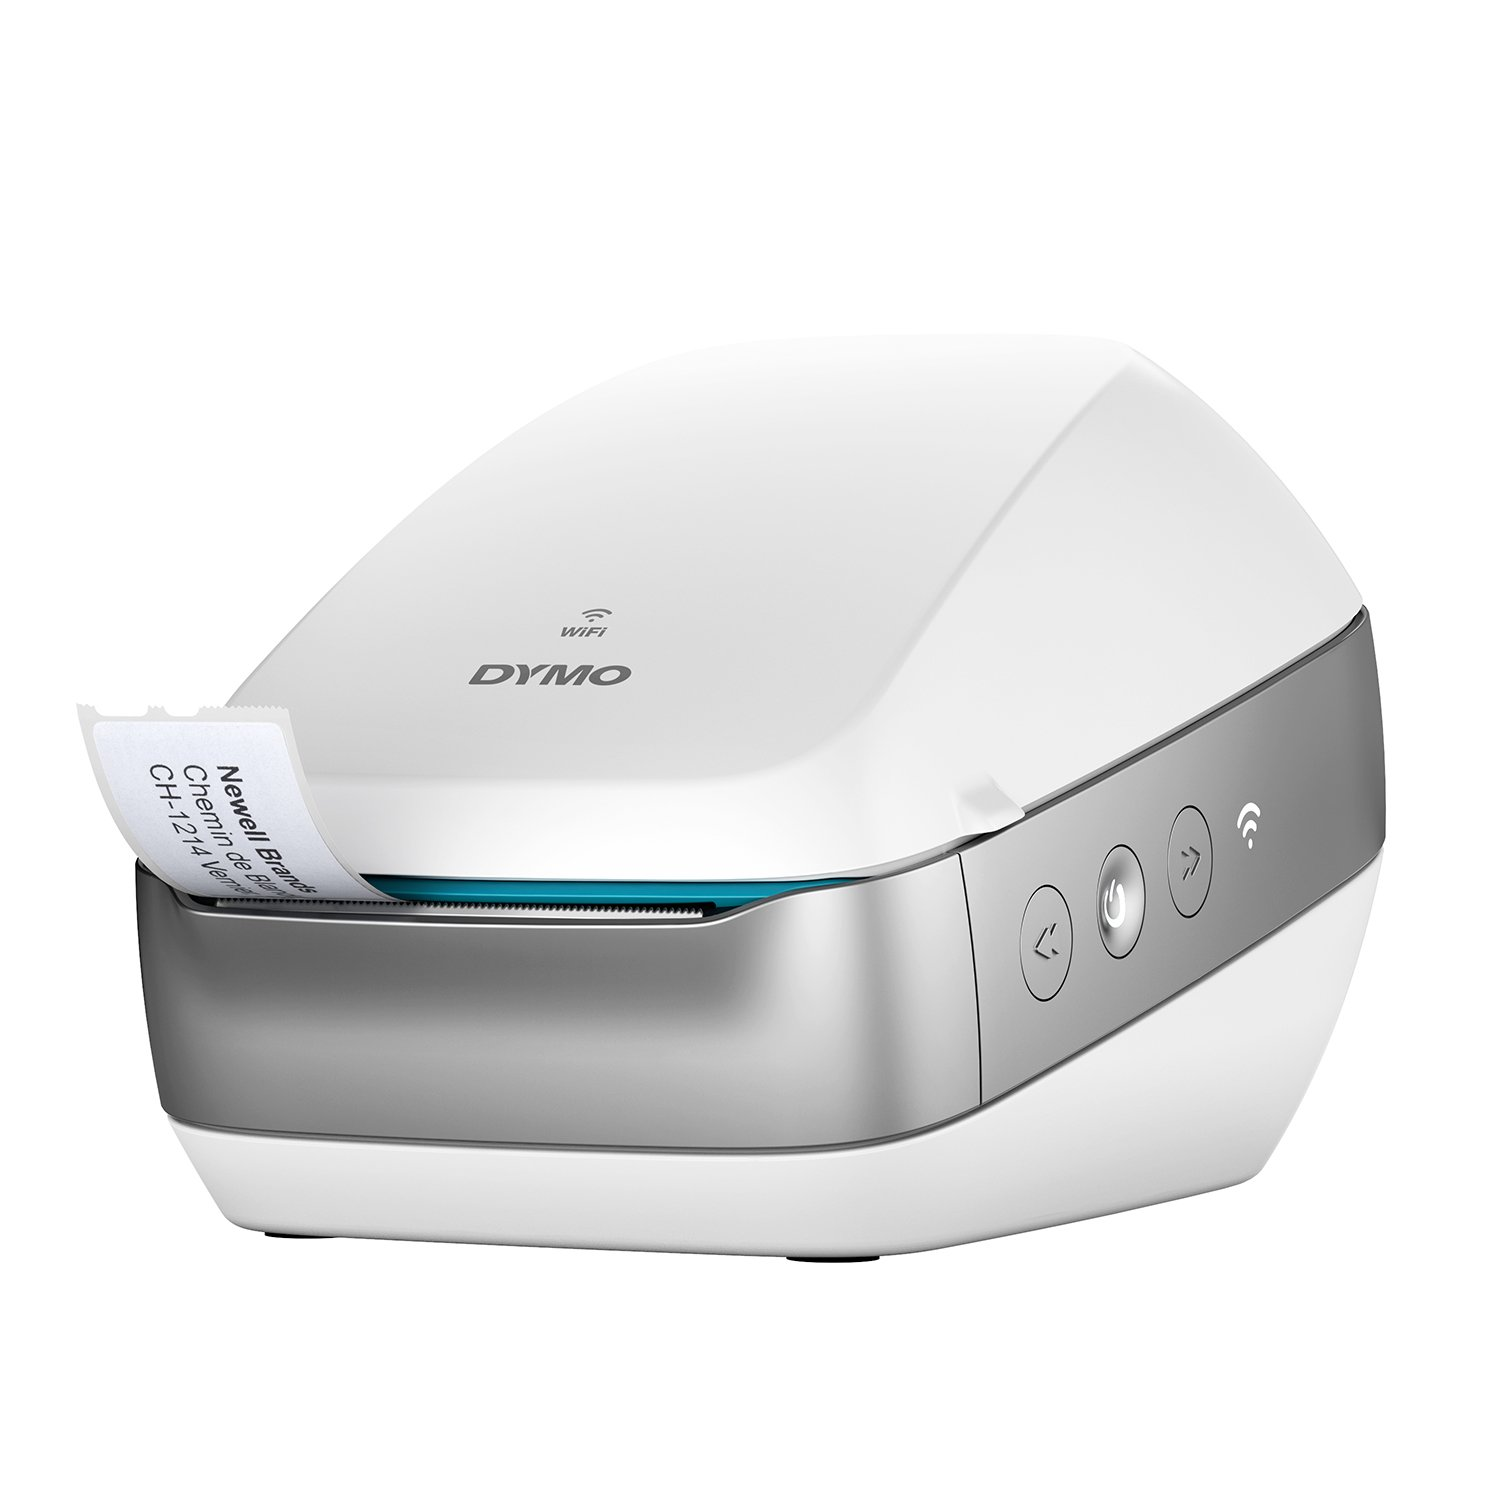 DYMO LabelWriter Wireless impresora de etiquetas, color ...